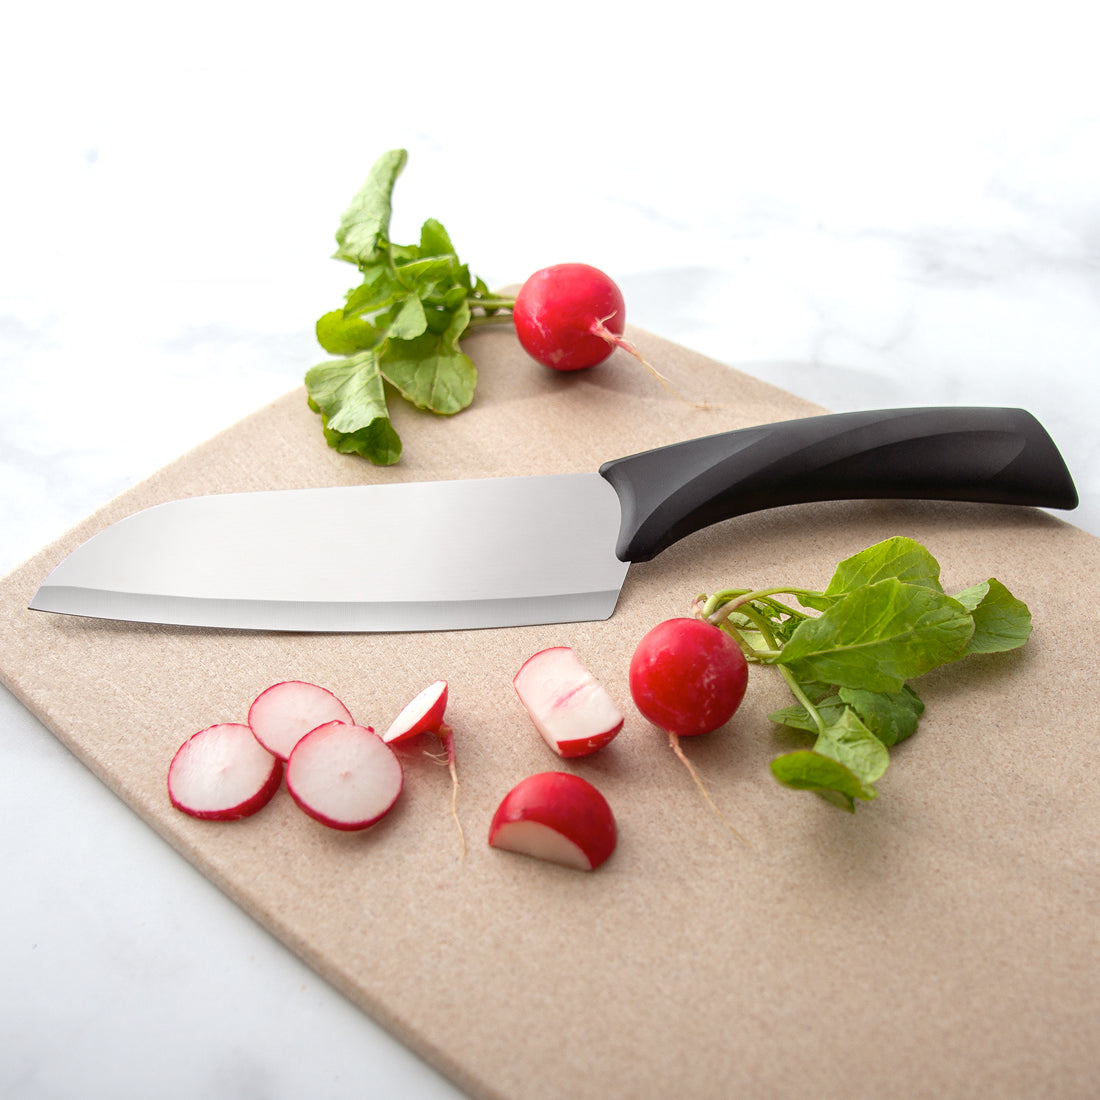 Rada Cutlery Anthem Wave Cook's knife on cutting board with radishes.